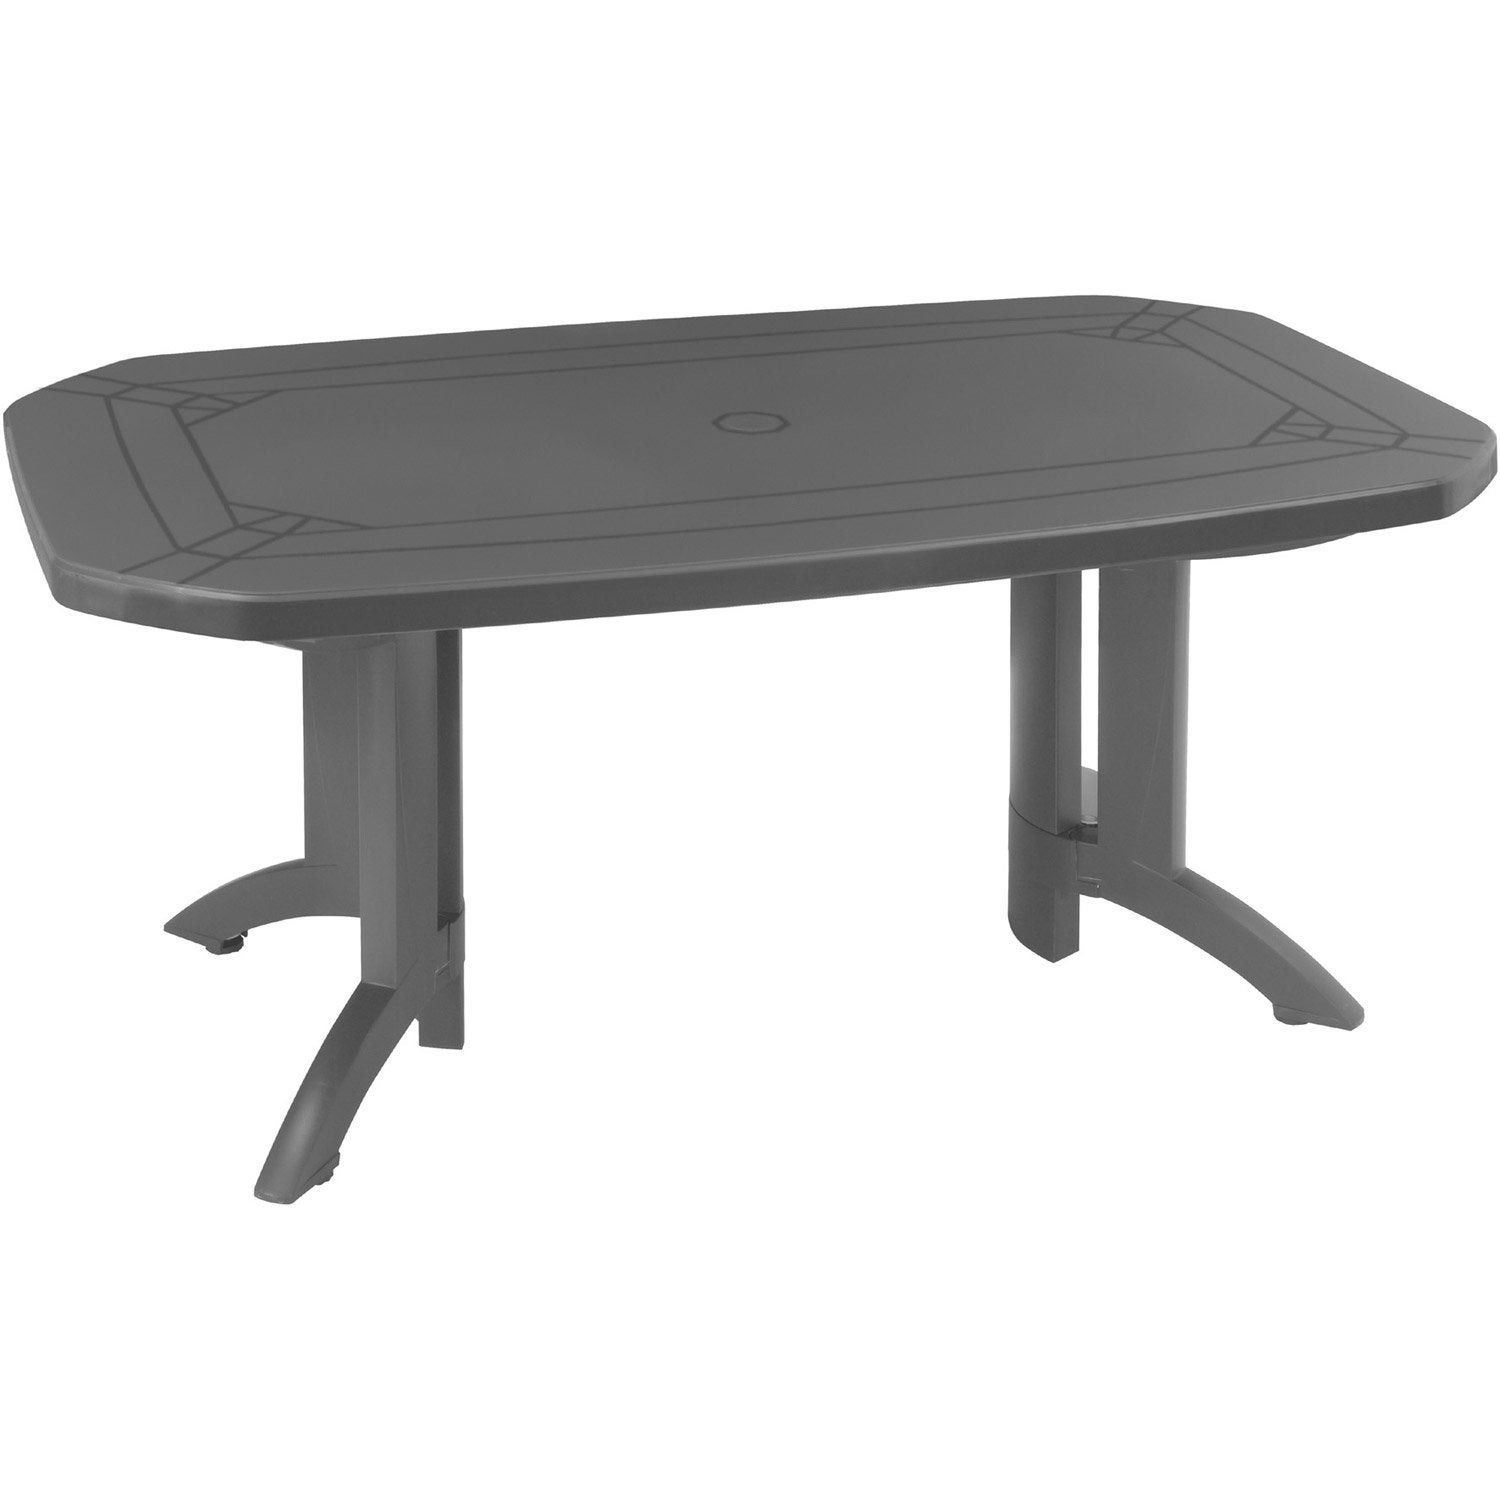 Table de jardin rectangulaire v ga grosfillex leroy merlin for Leroy merlin table jardin